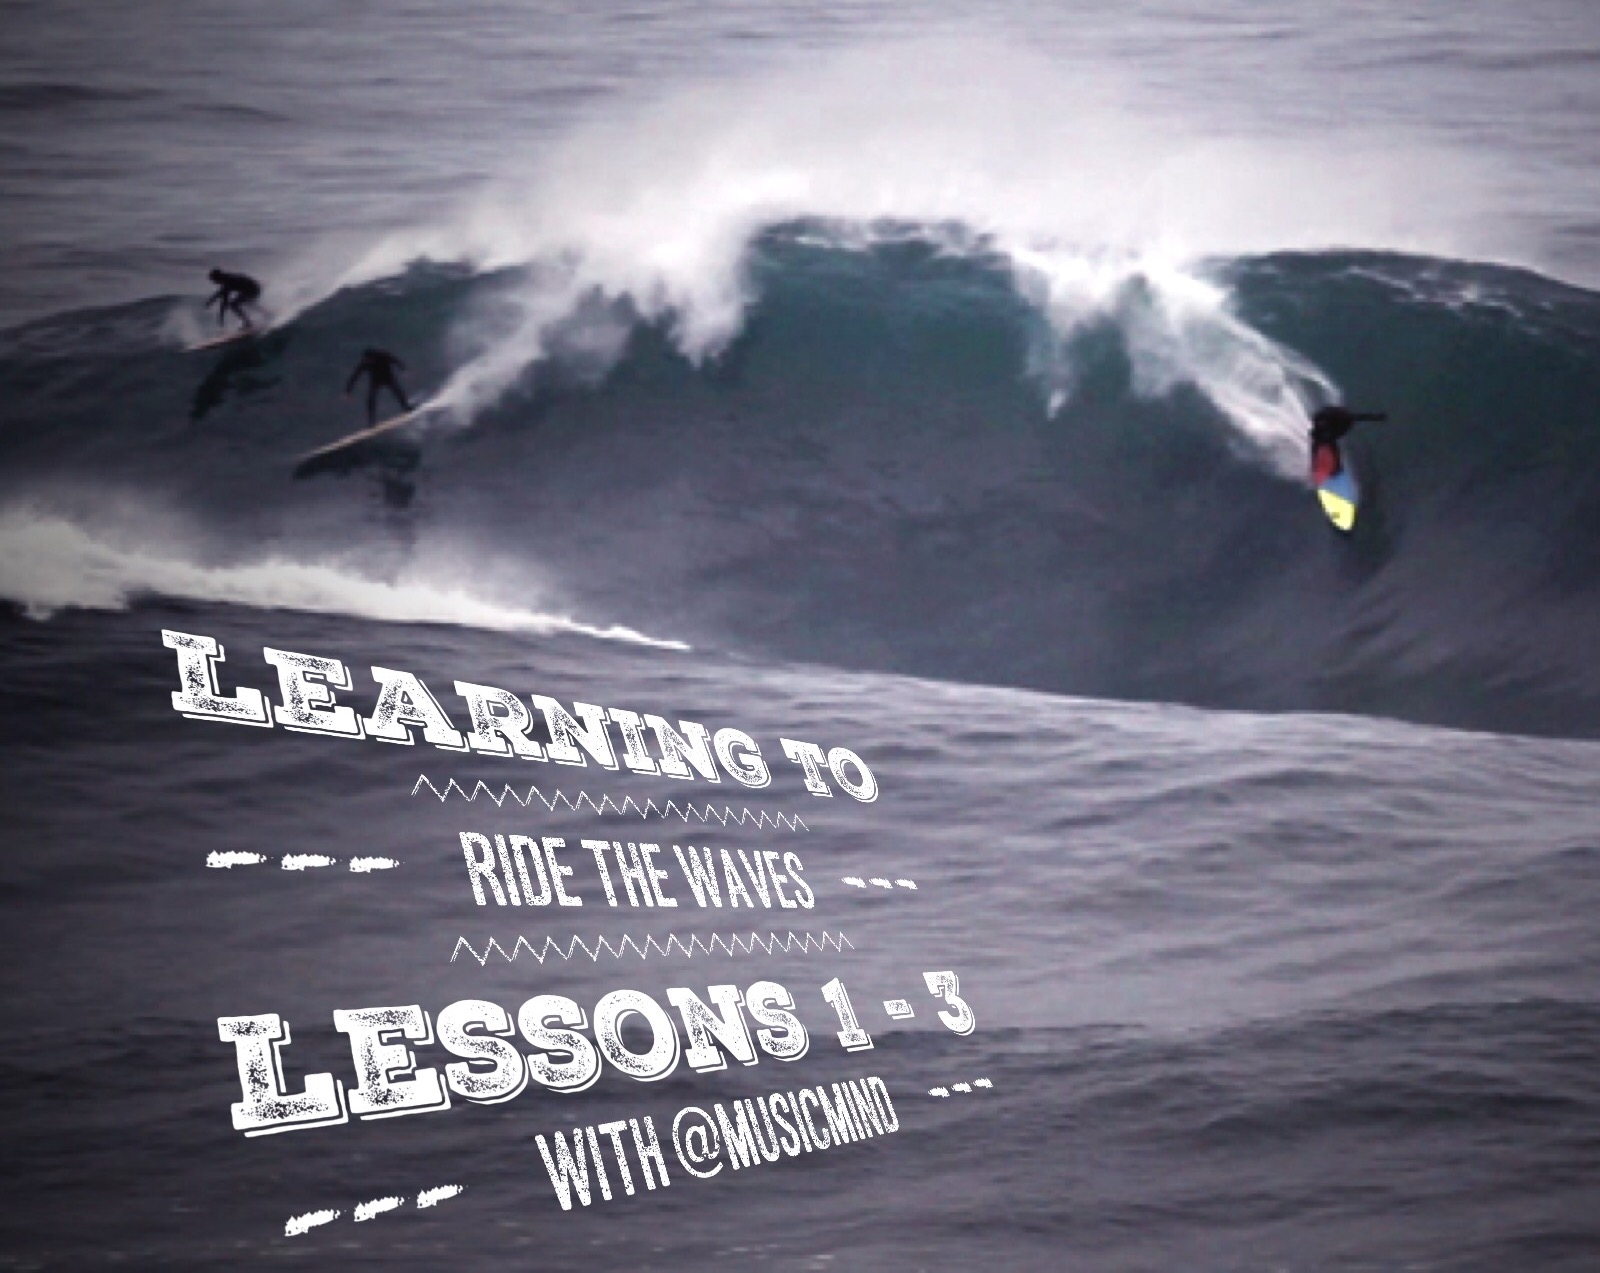 Learning to ride the waves – Lessons 1-3